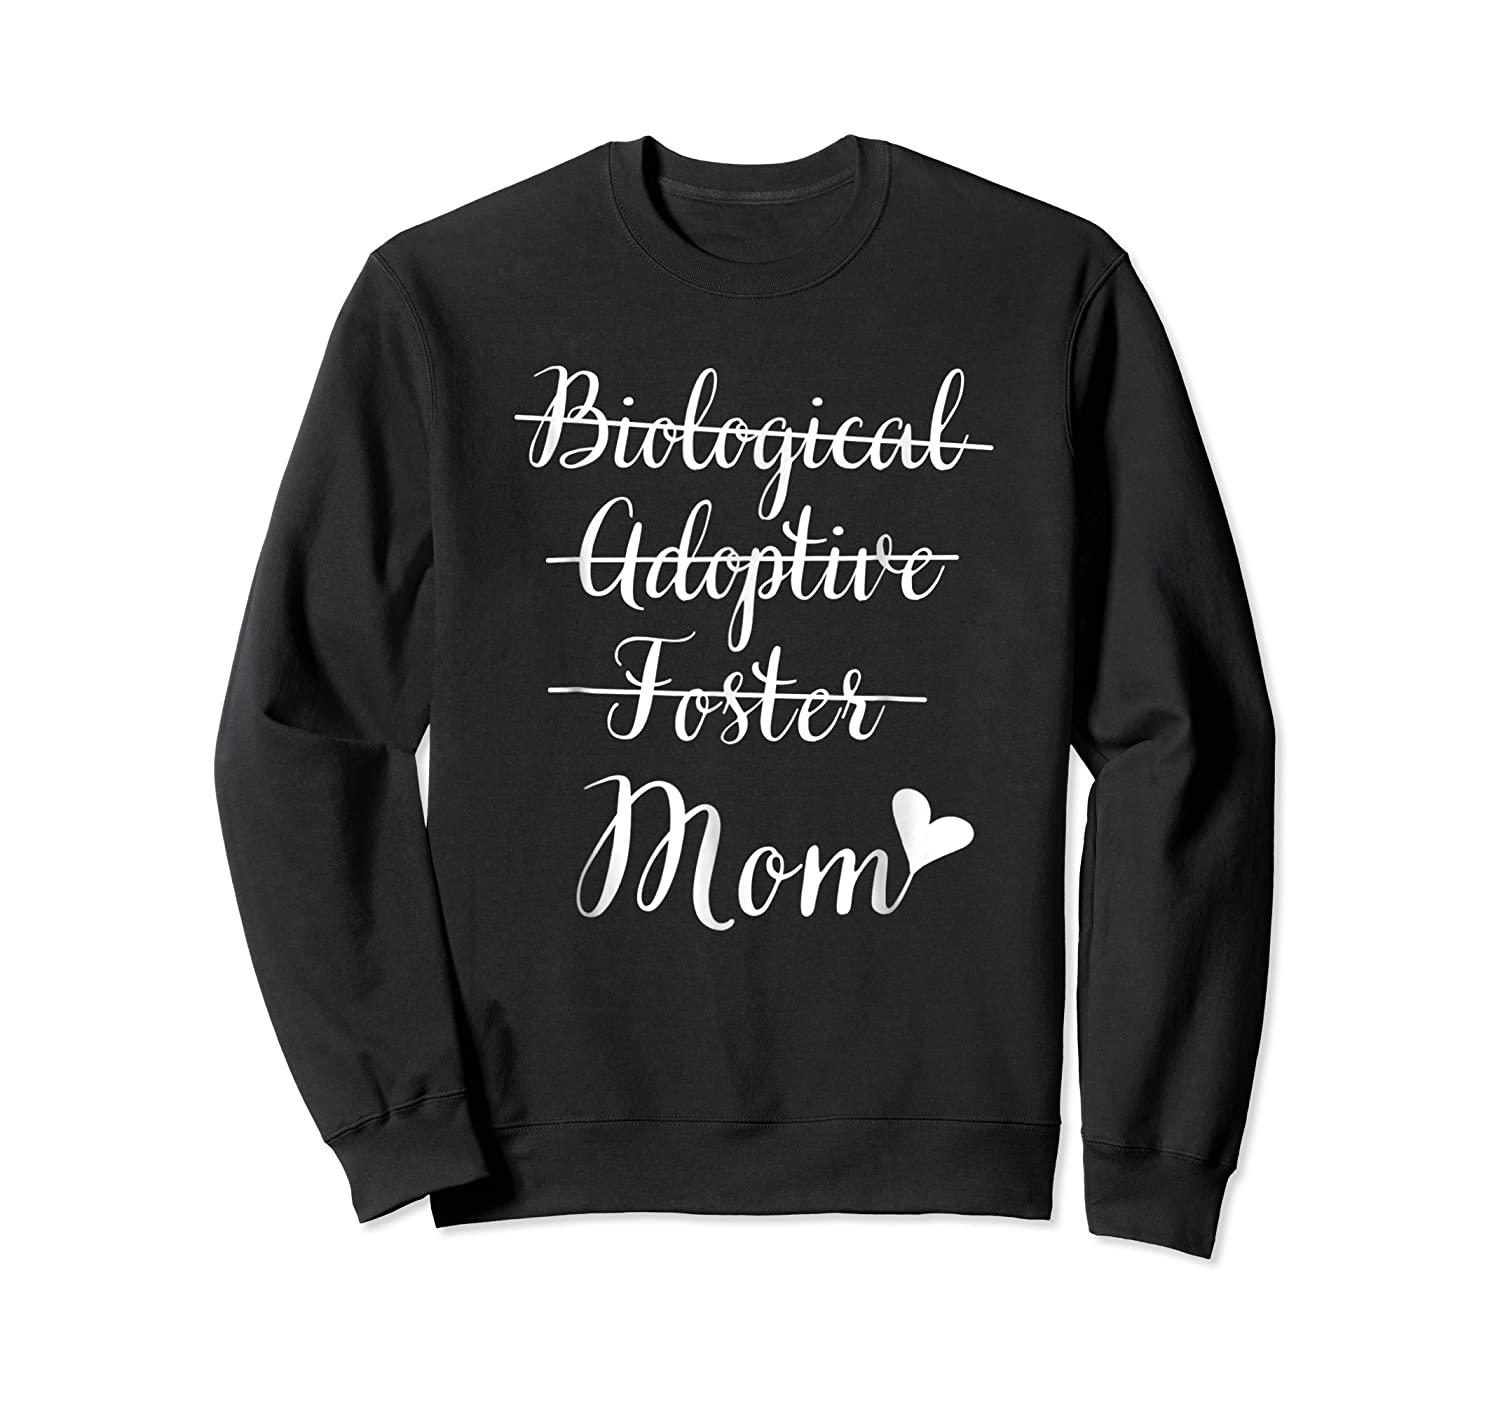 Not Biological Adoptive Foster Just Mom Mothers Day Shirts Crewneck Sweater